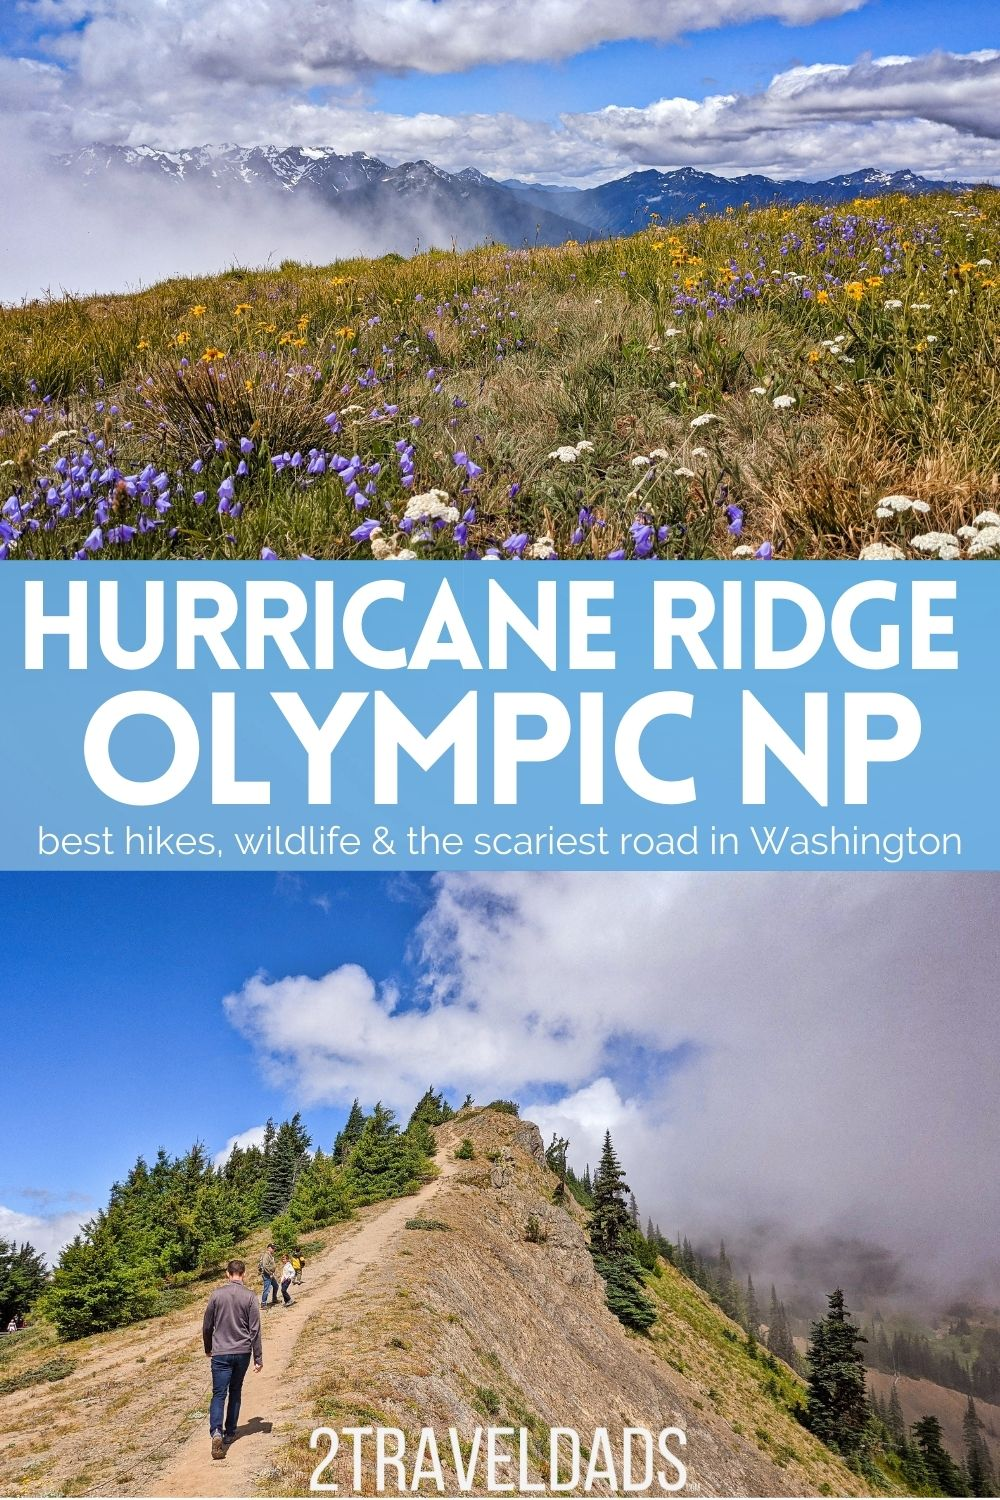 Hiking at Hurricane Ridge is one of the best day trips to the Olympic Peninsula. We've rated the trails rated from easiest to most difficult and included tips for visiting Hurricane Ridge any time of year.